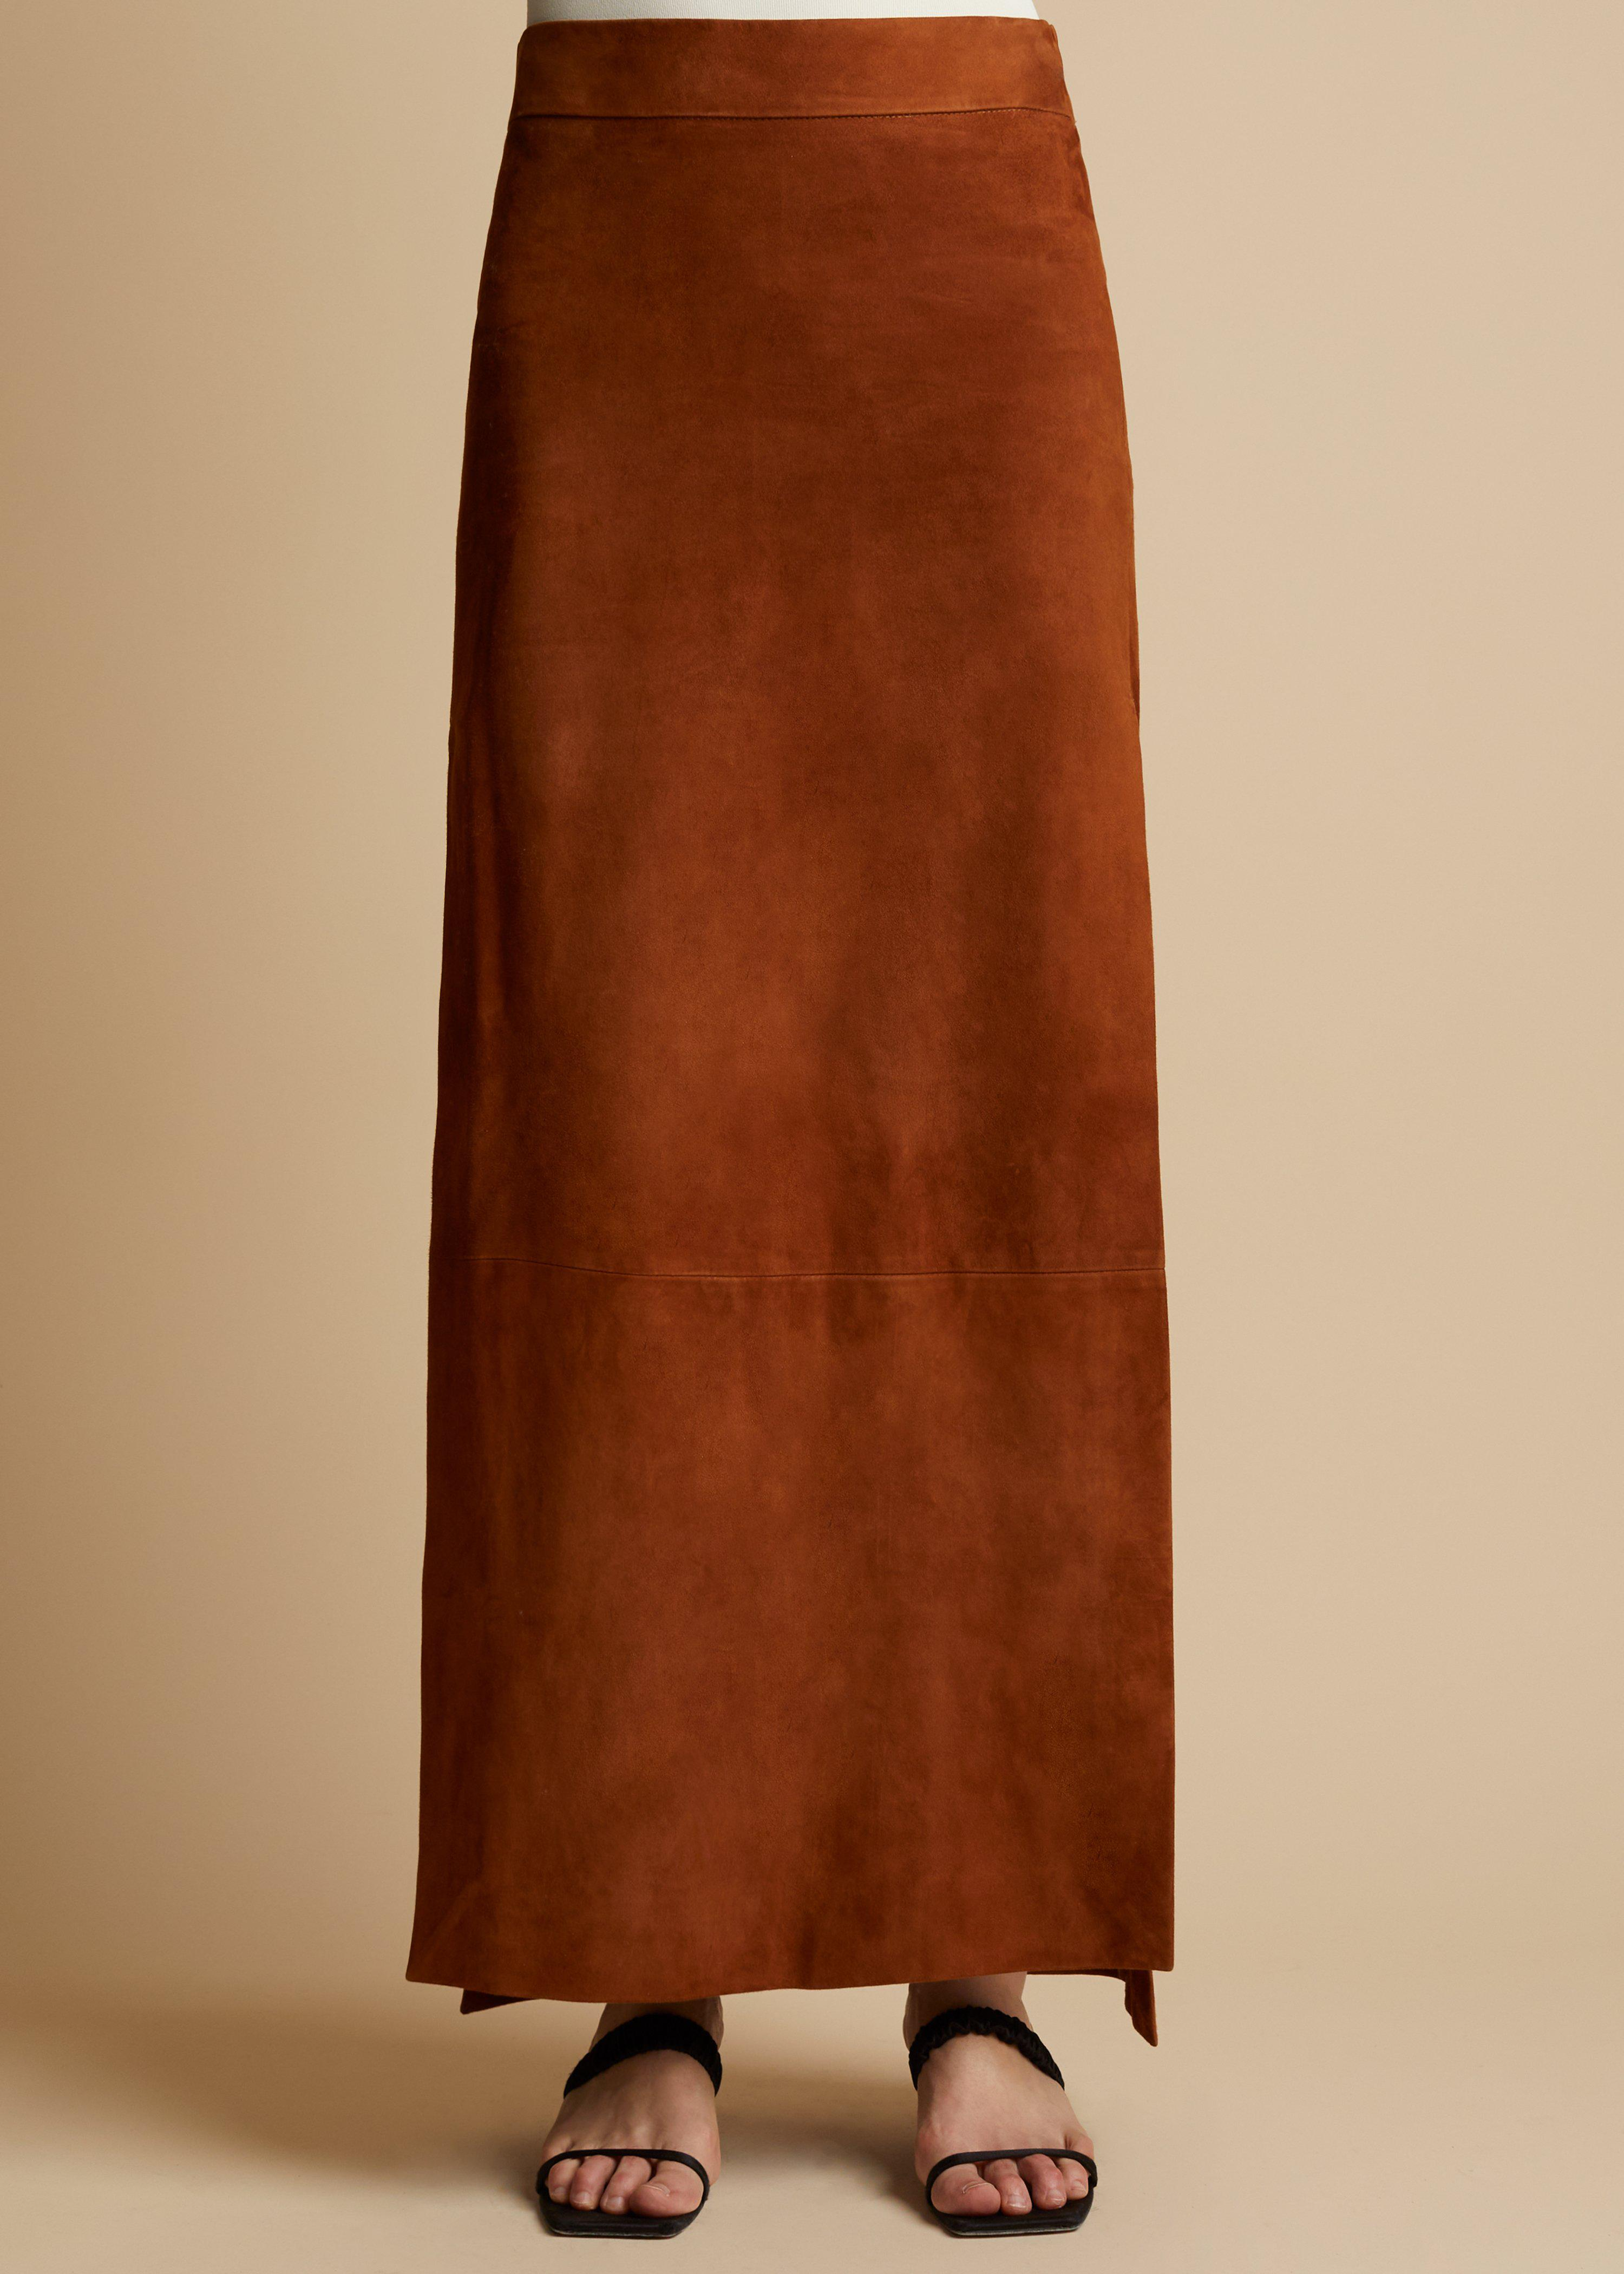 The Myla Skirt in Chestnut Suede 1